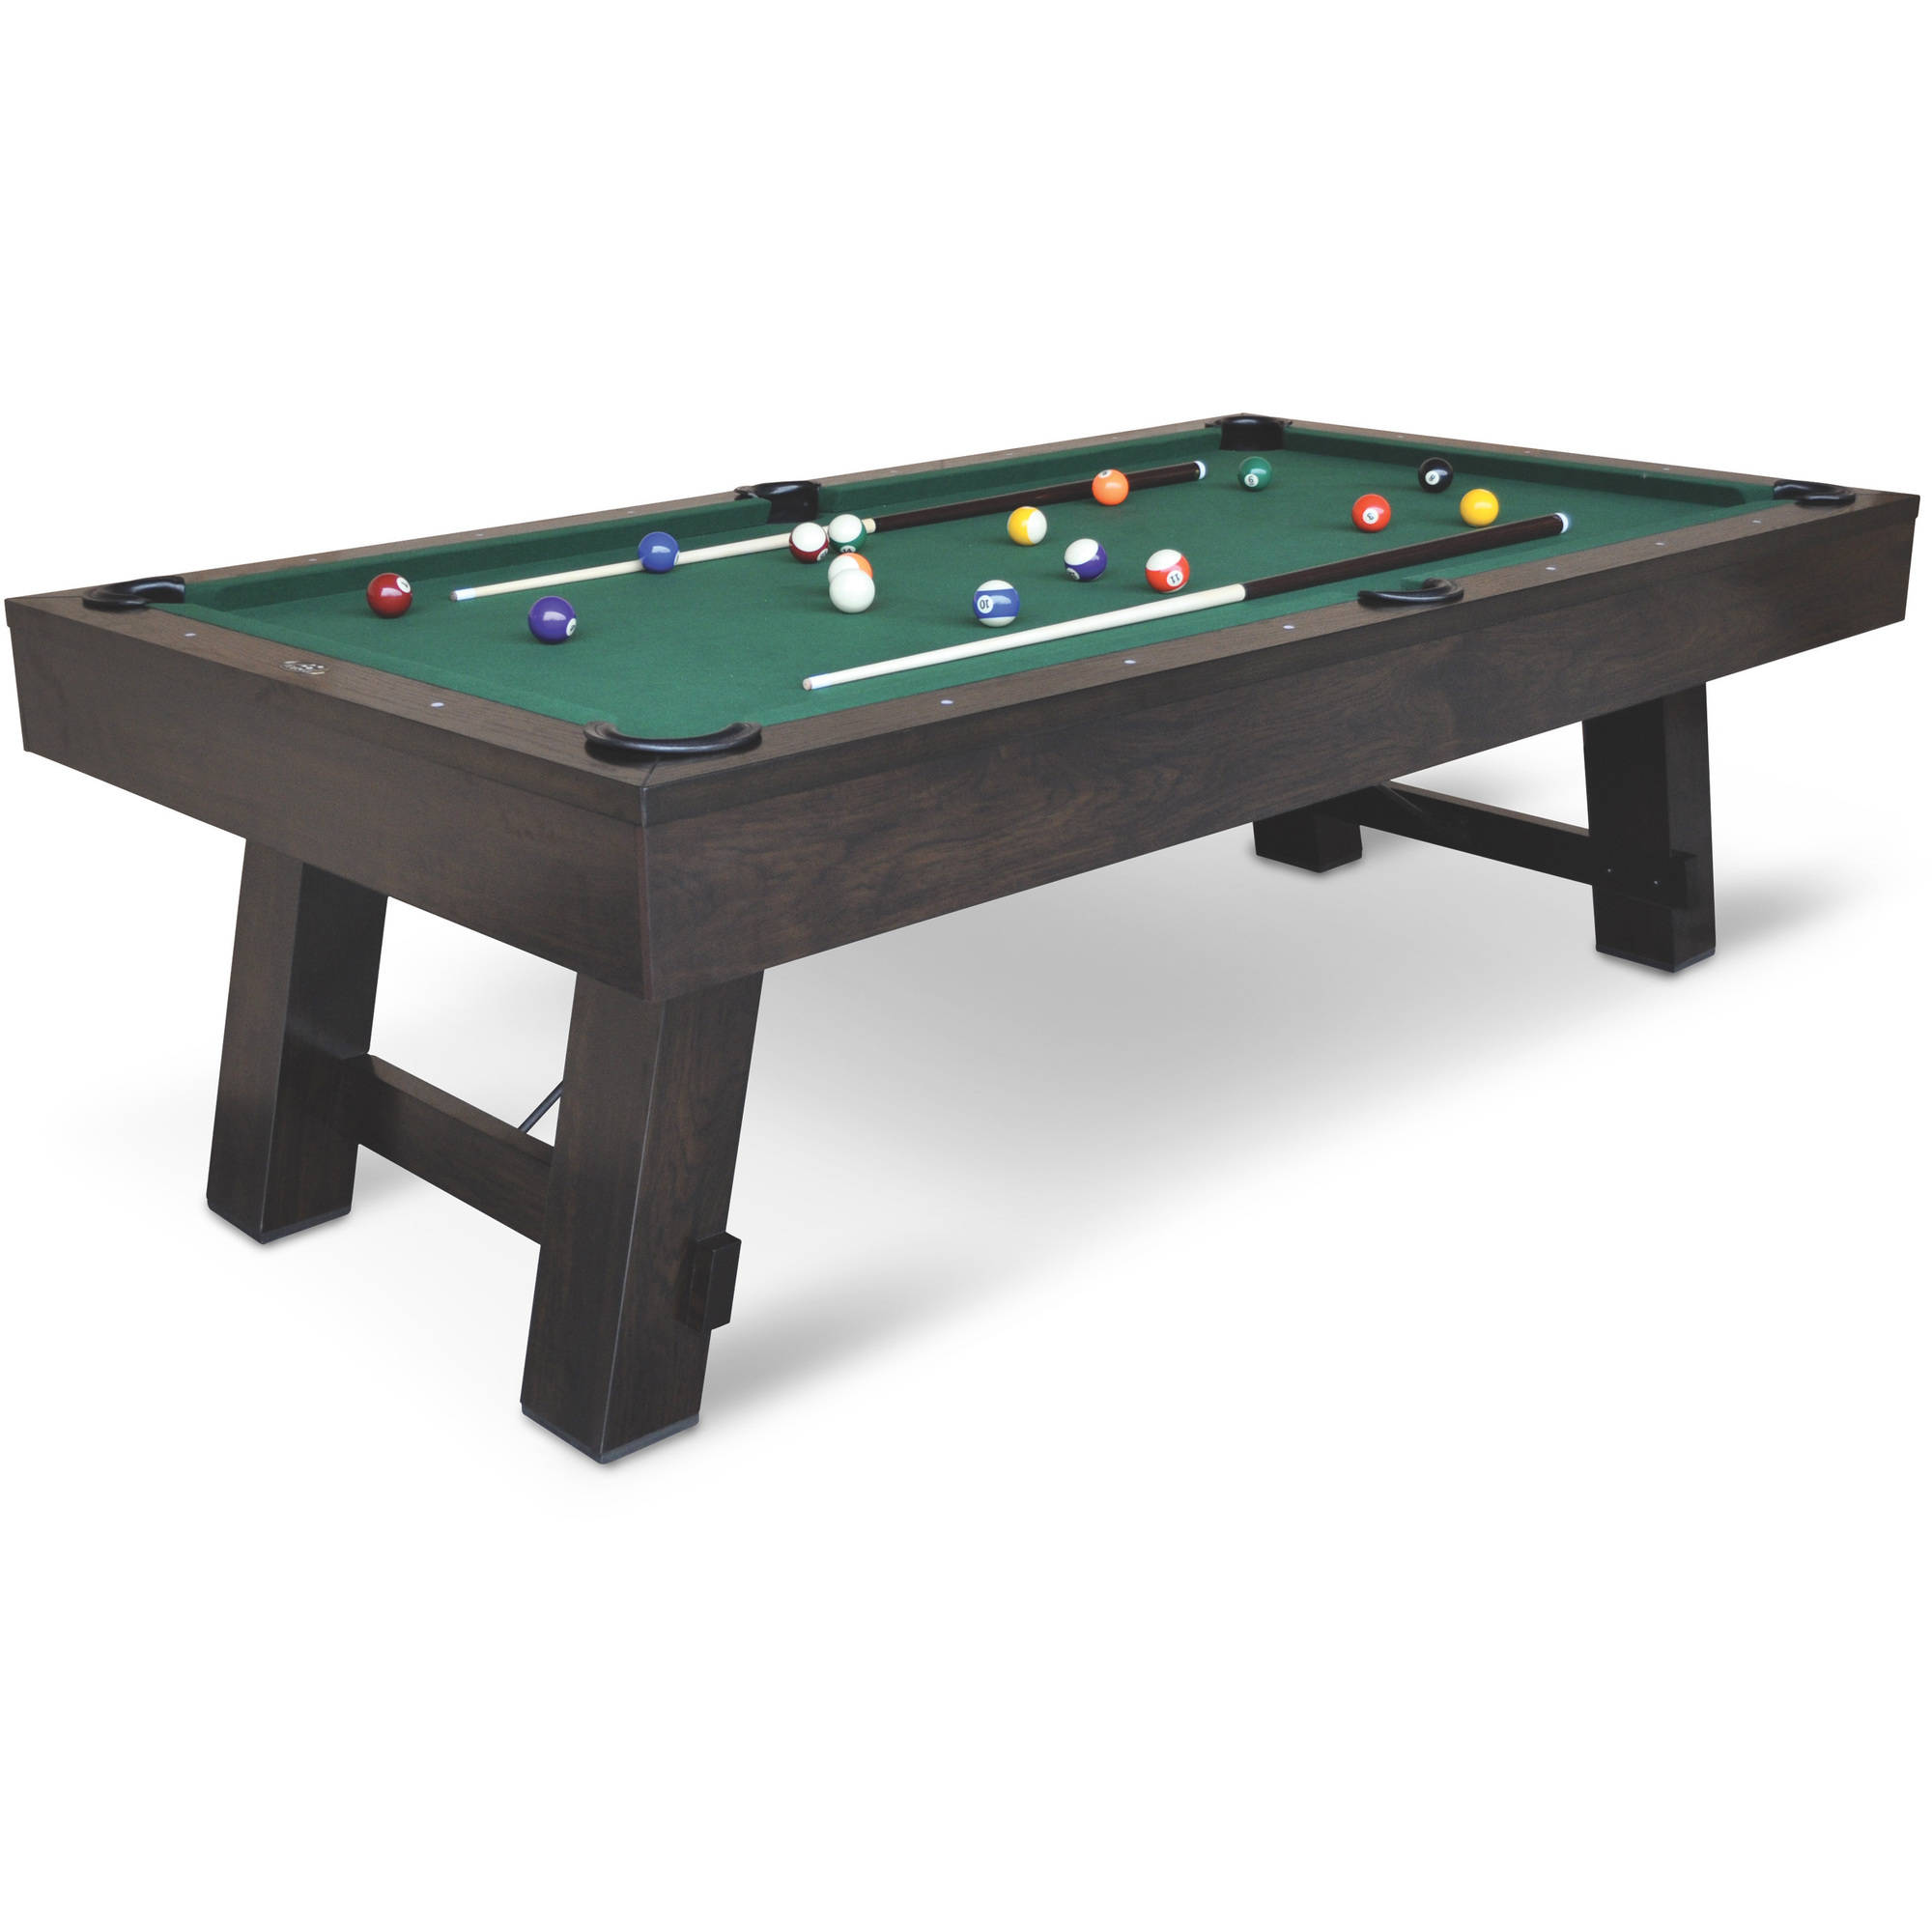 EastPoint Sports 96-inch Redington Billiard Pool Table by Eastpoint Sports